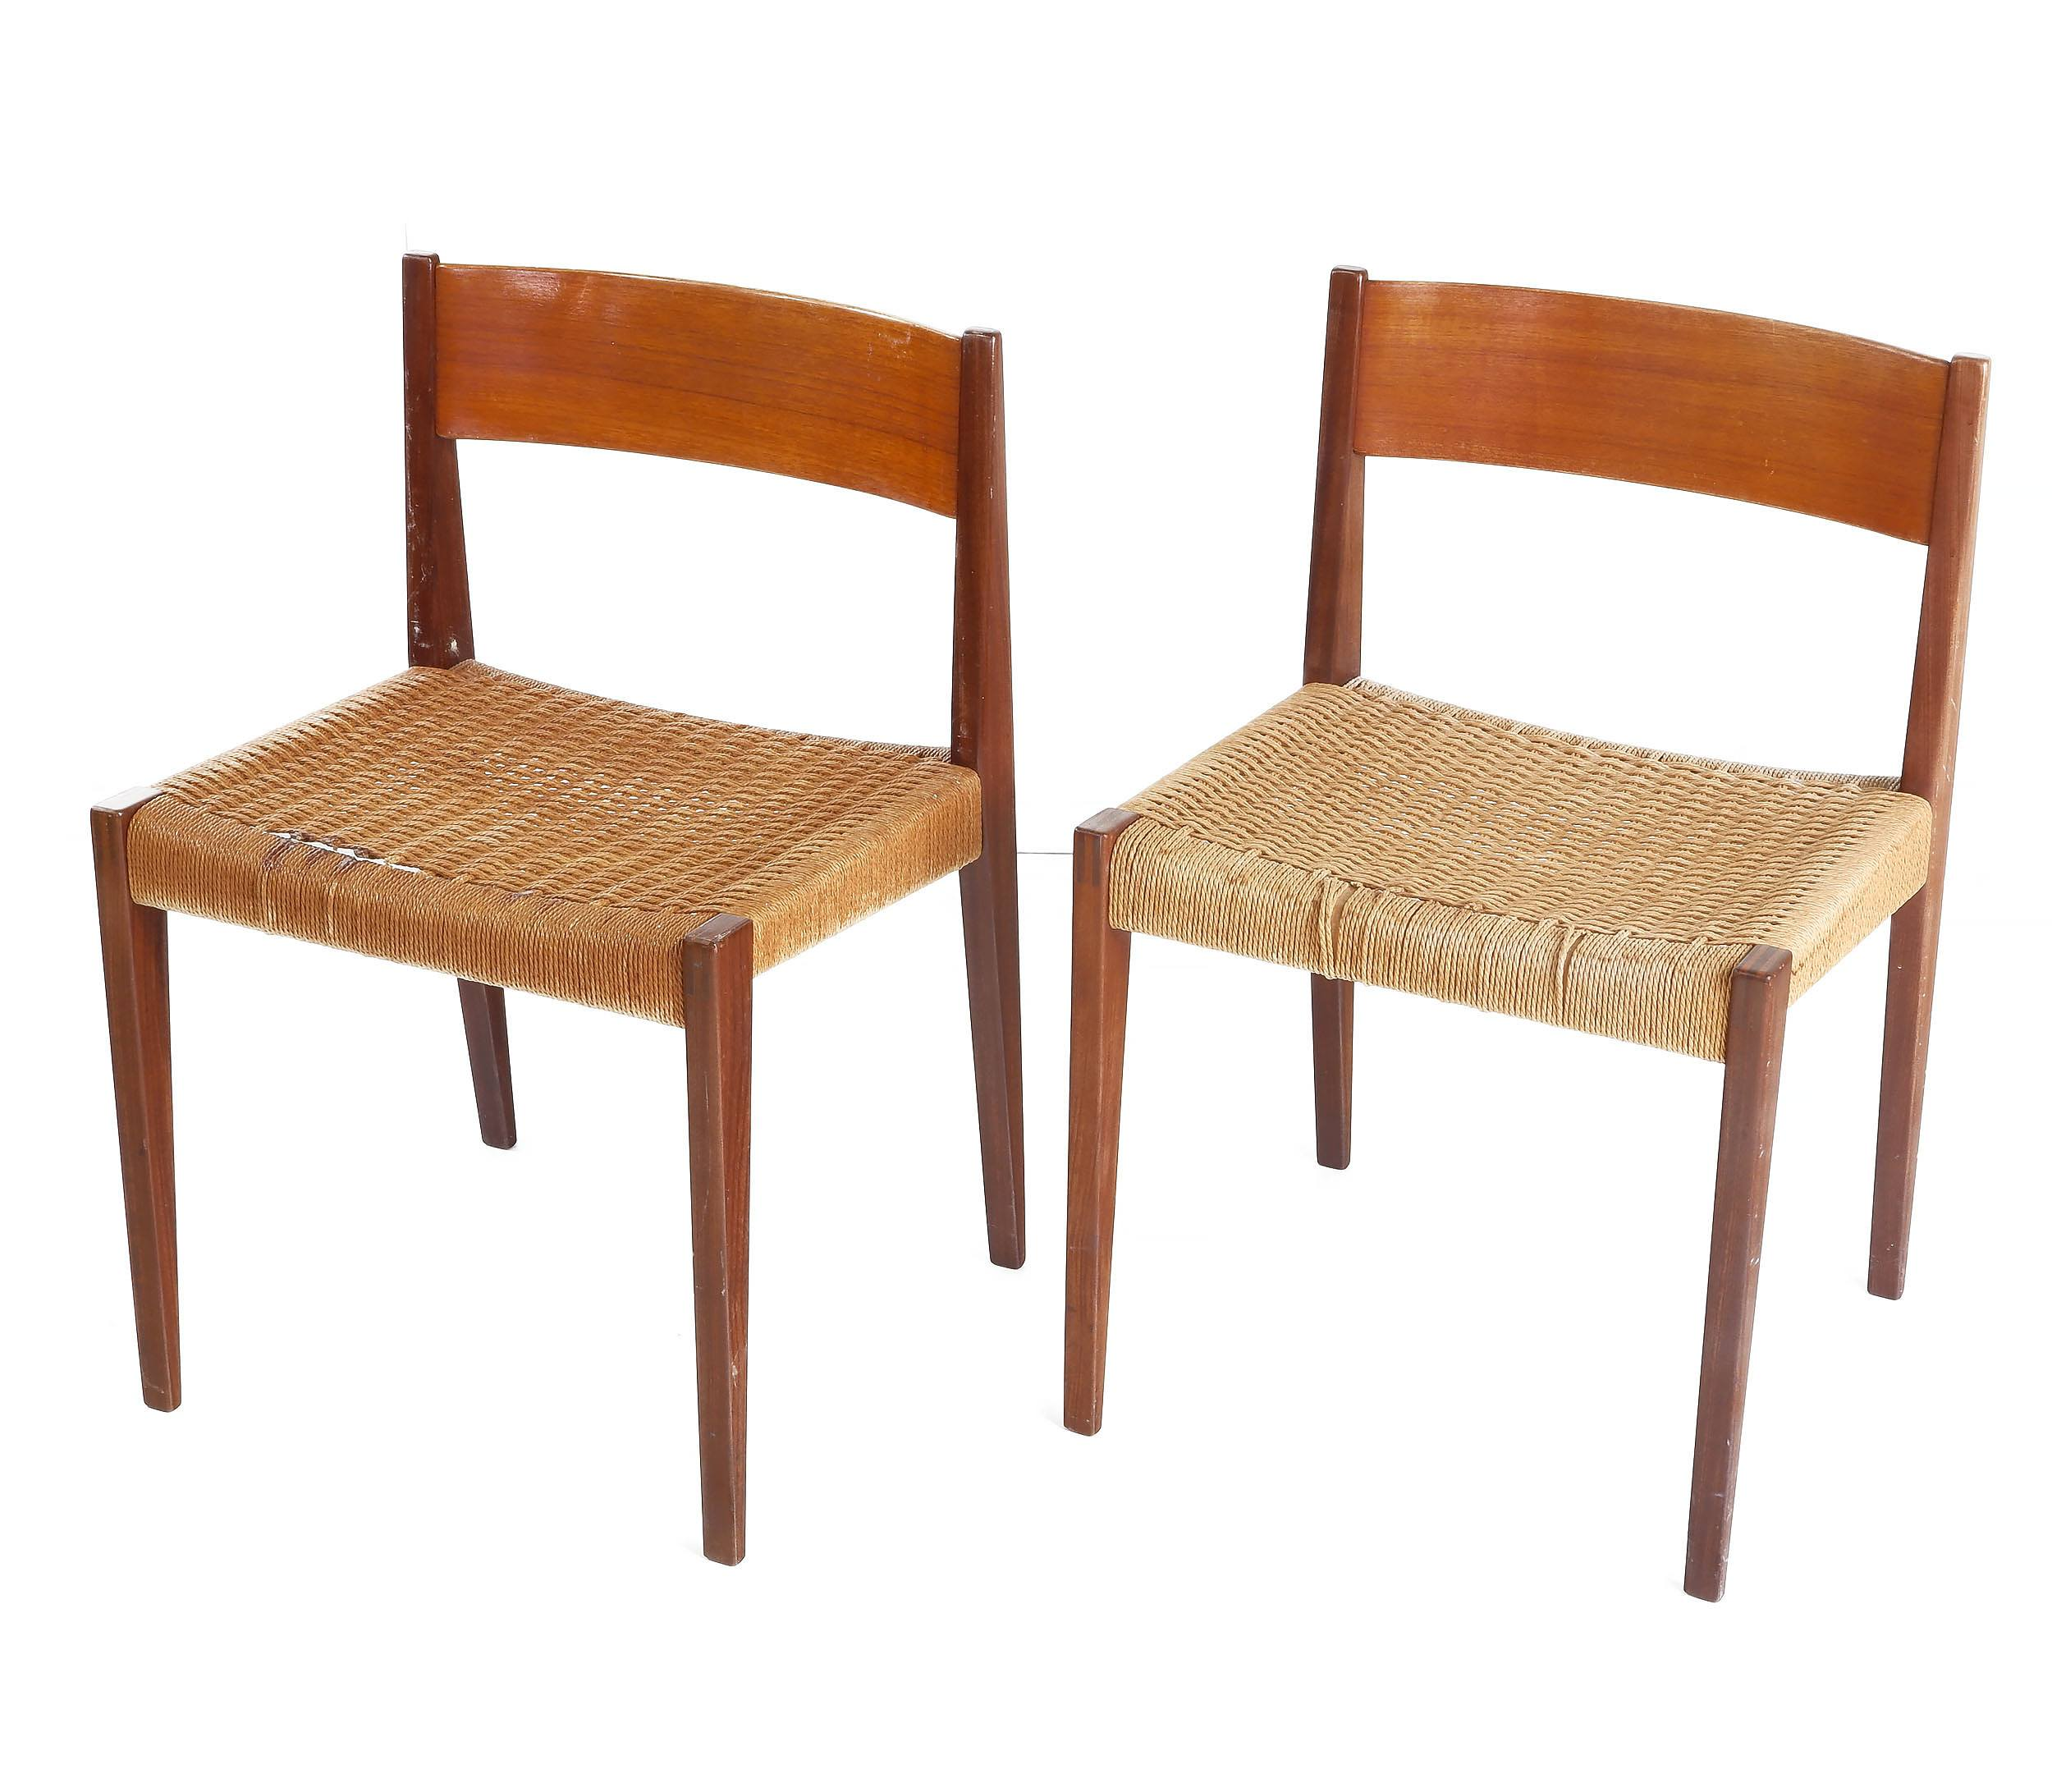 'Pair of Danish Teak and Woven Sea Grass Side Chairs'